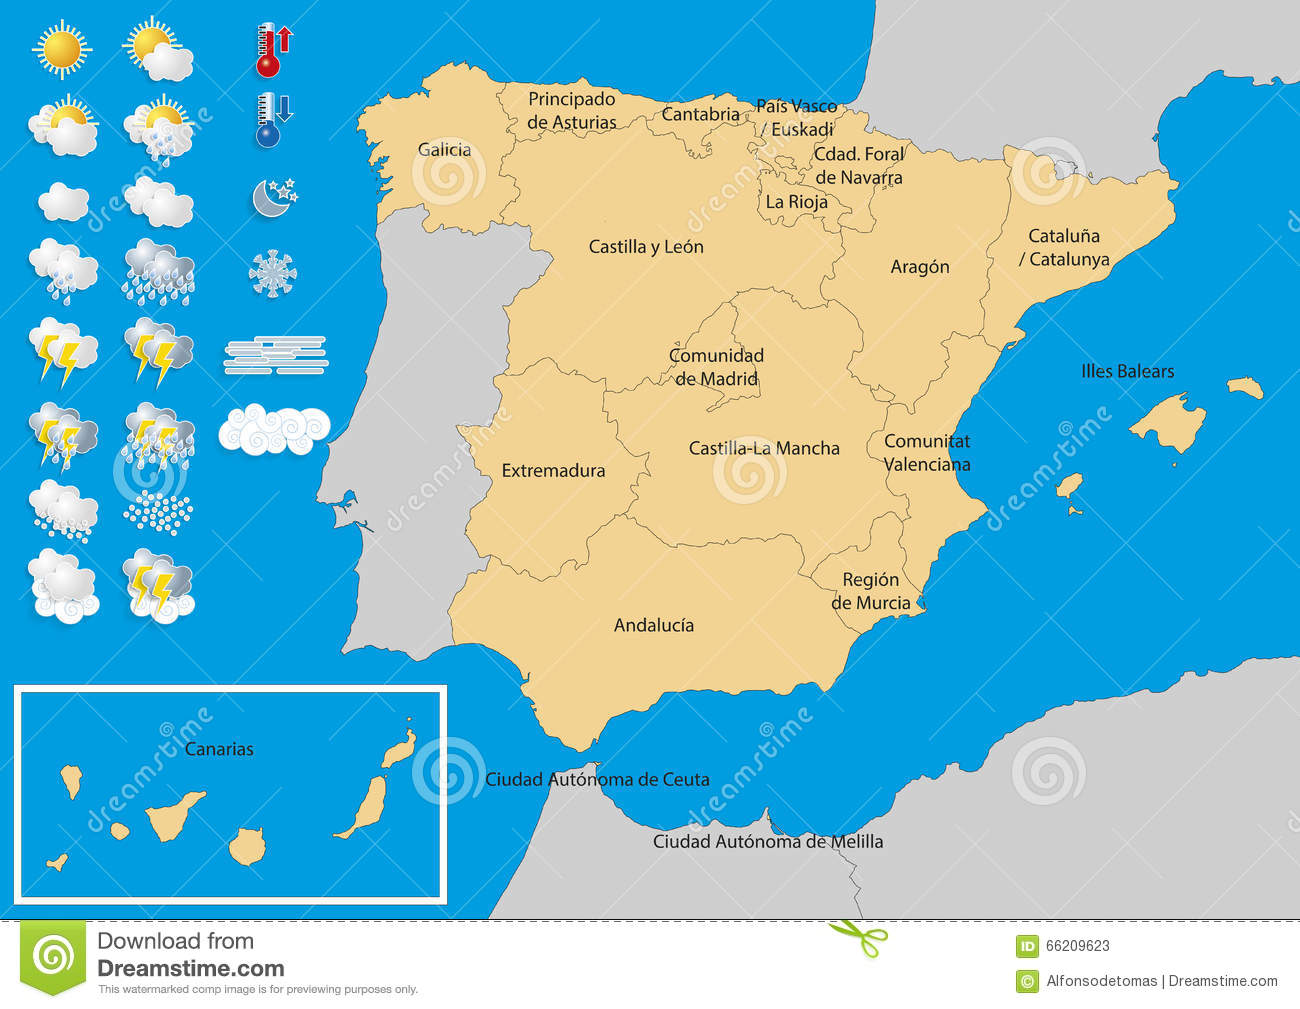 Weather Map Of Spain.Spain Map Weather Convertido Stock Vector Illustration Of Freeze